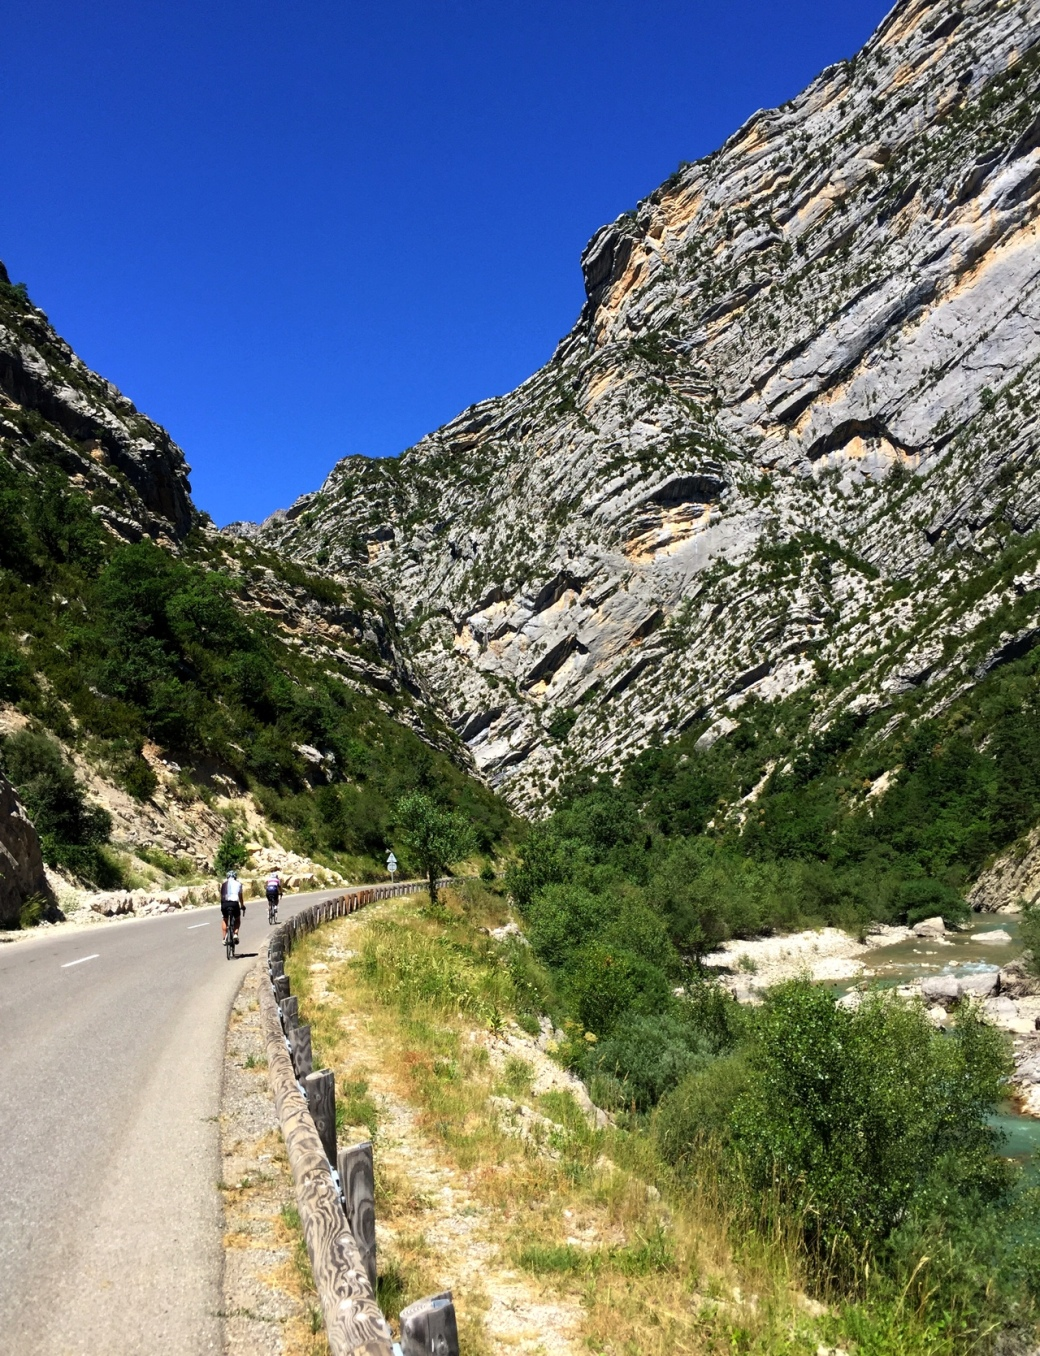 Towards the top of the Verdon